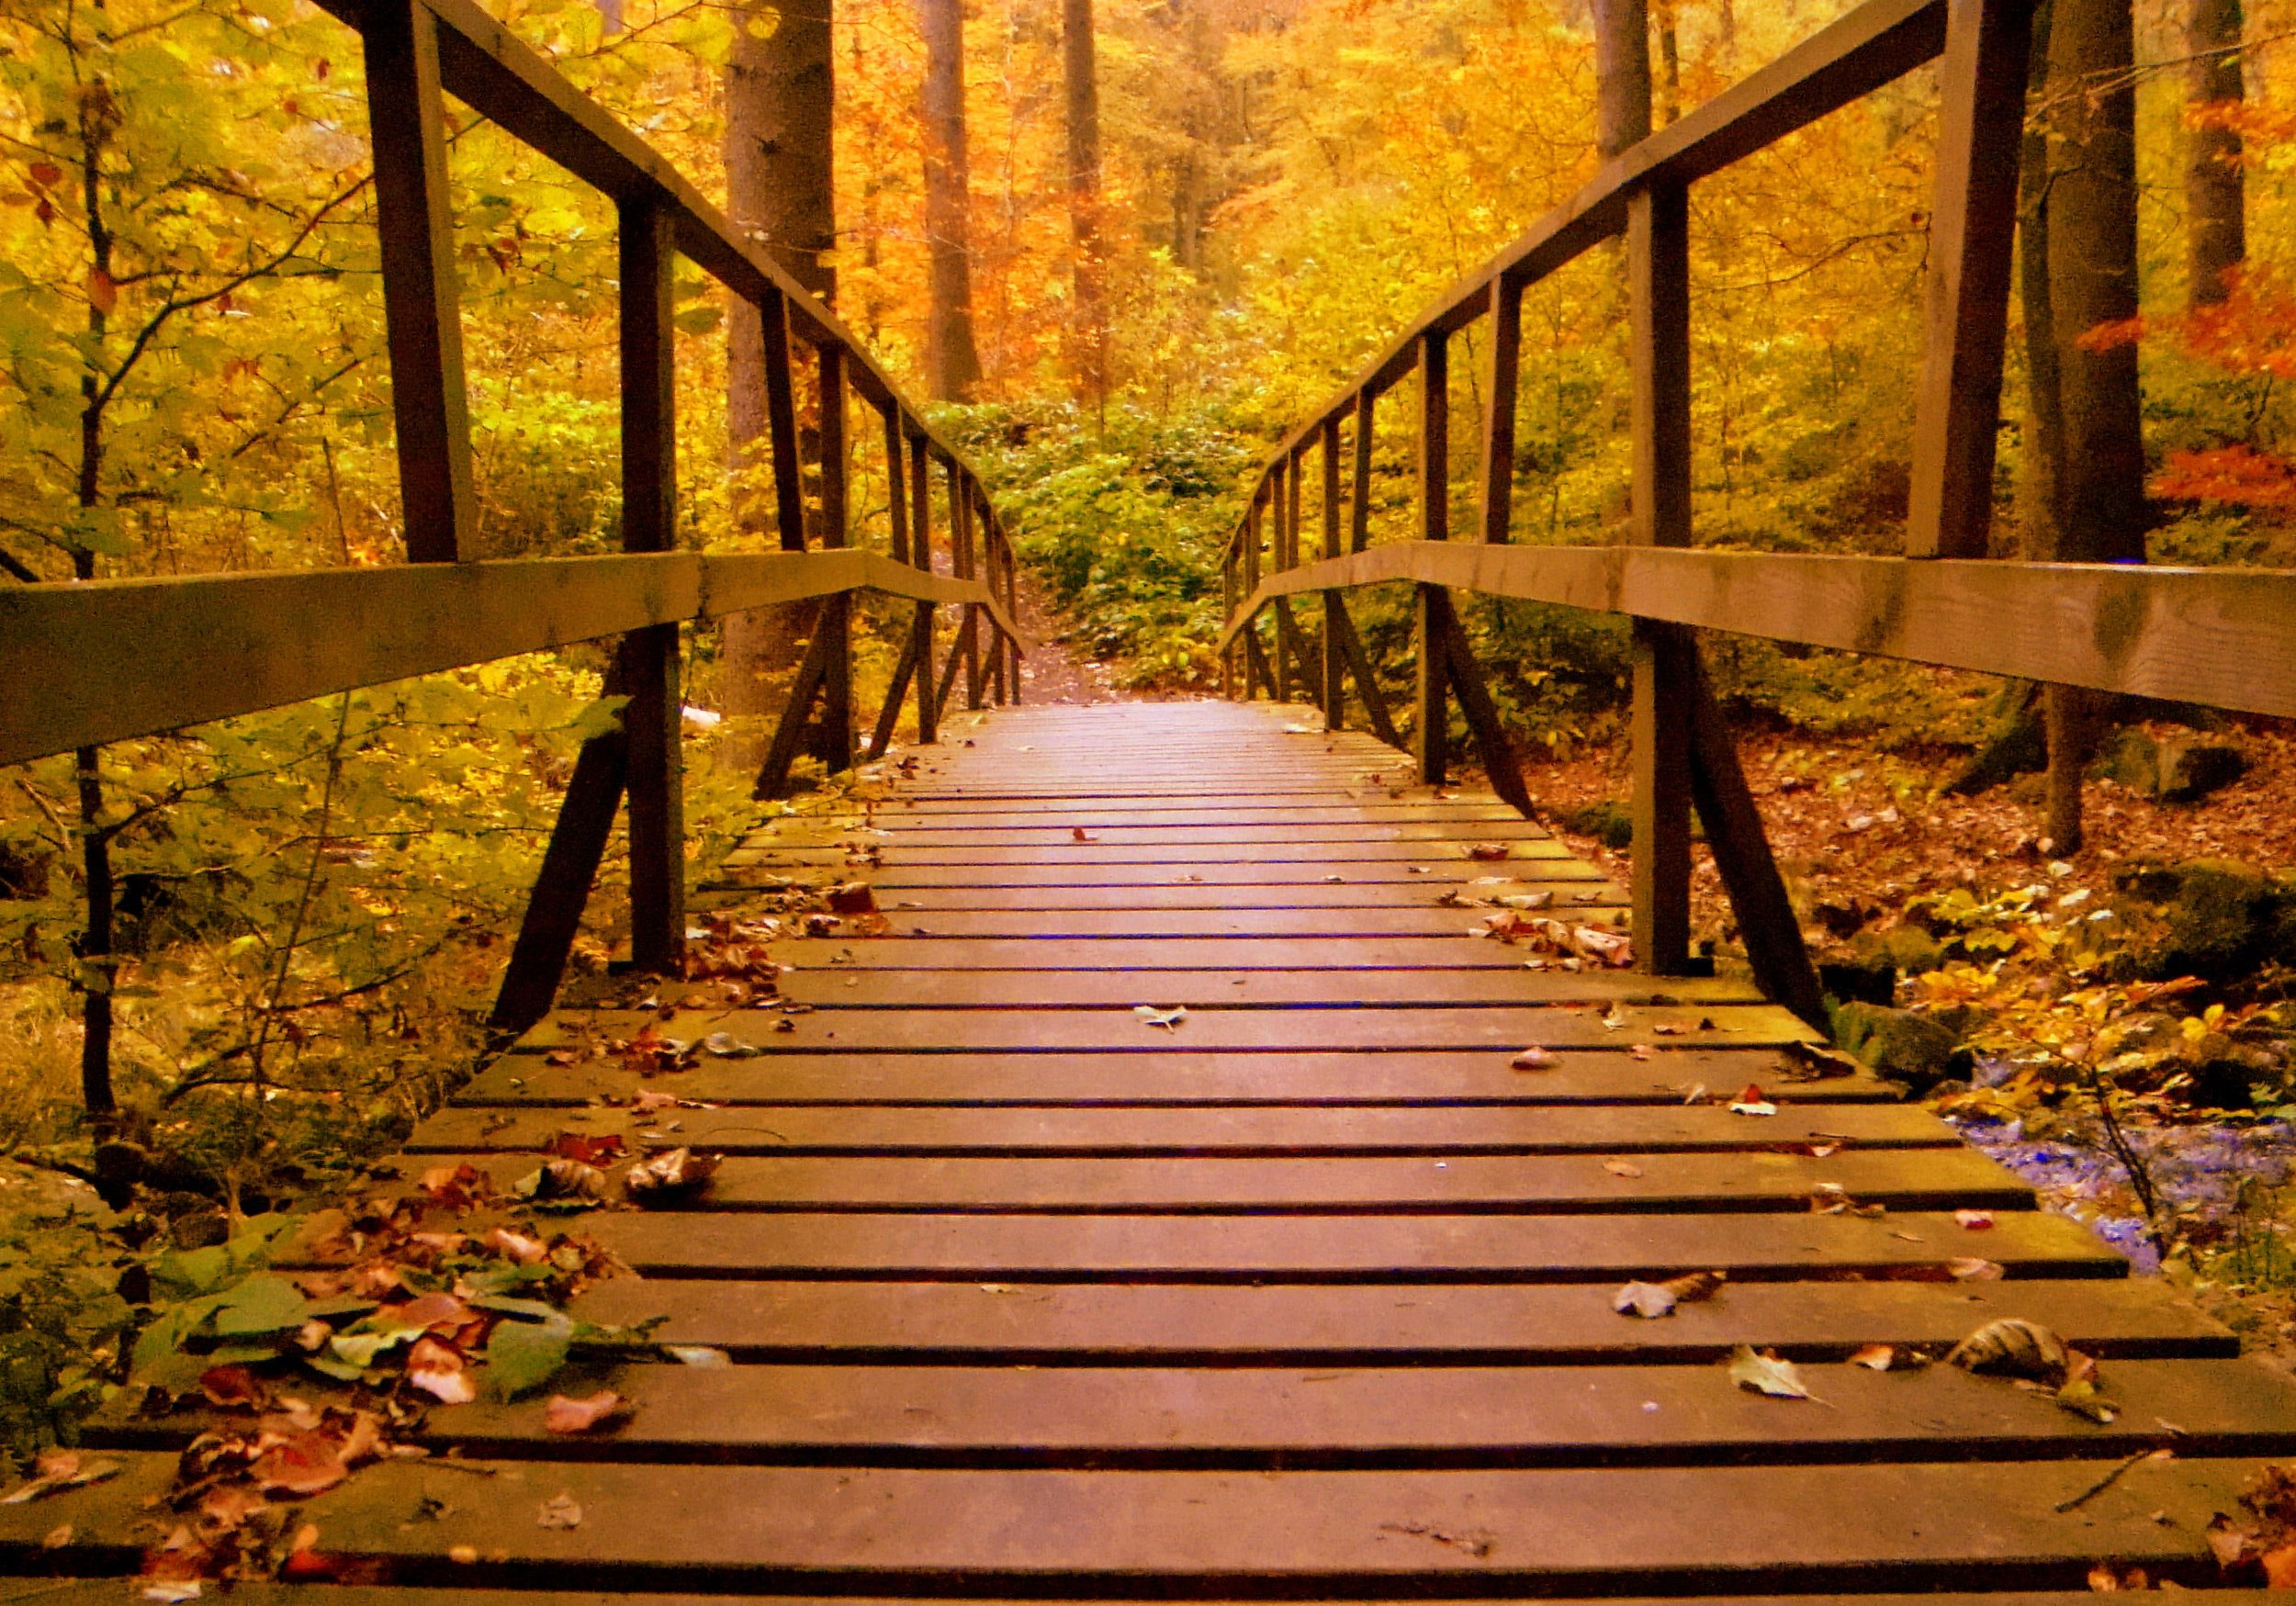 autumn-autumn-leaves-bridge-638481.jpg